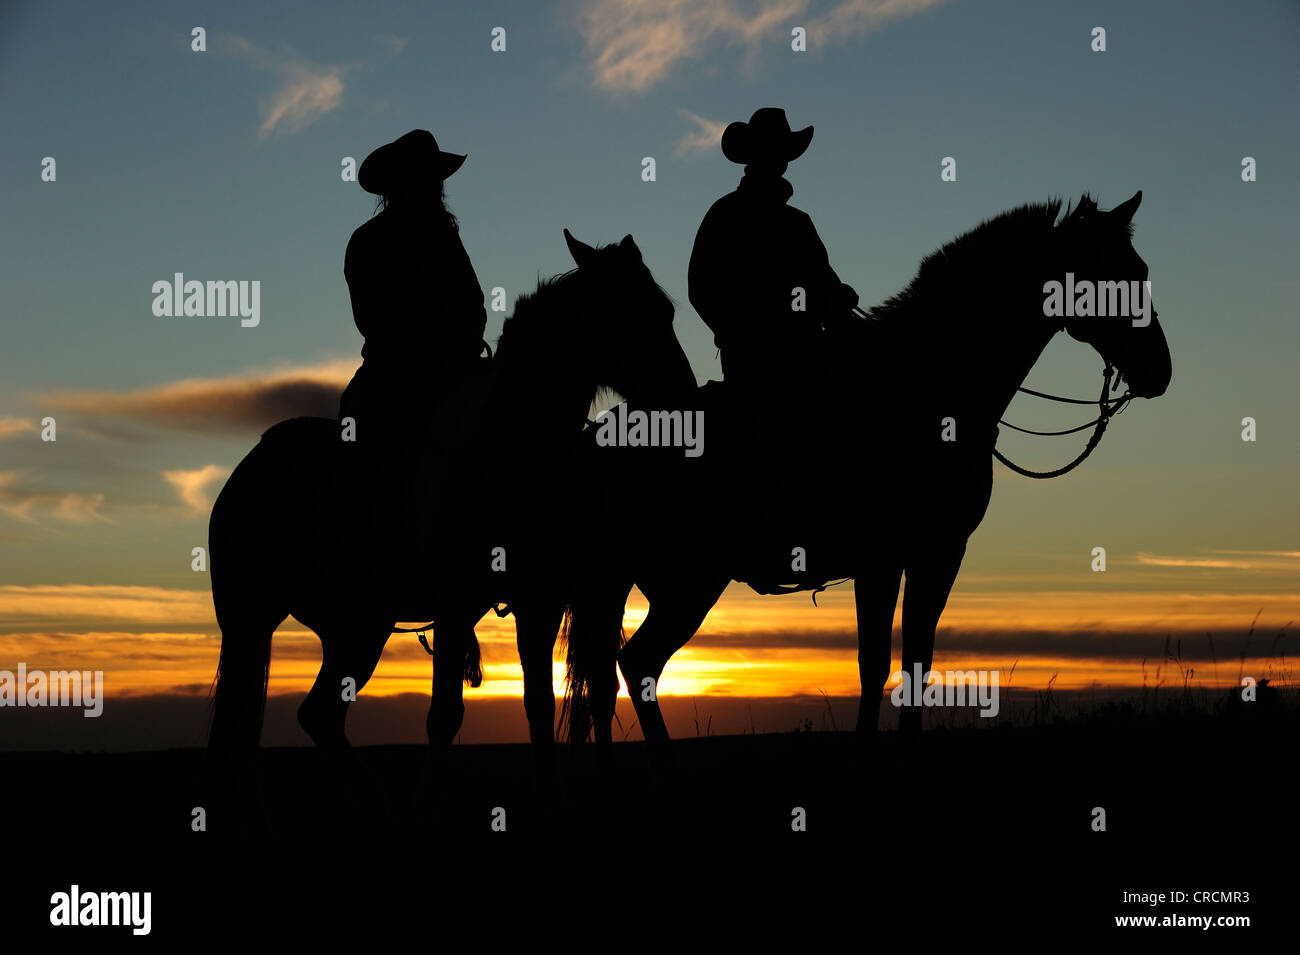 Cowgirl and Cowboy sitting on horseback at sunset, Saskatchewan, Canada, North America - Stock Image